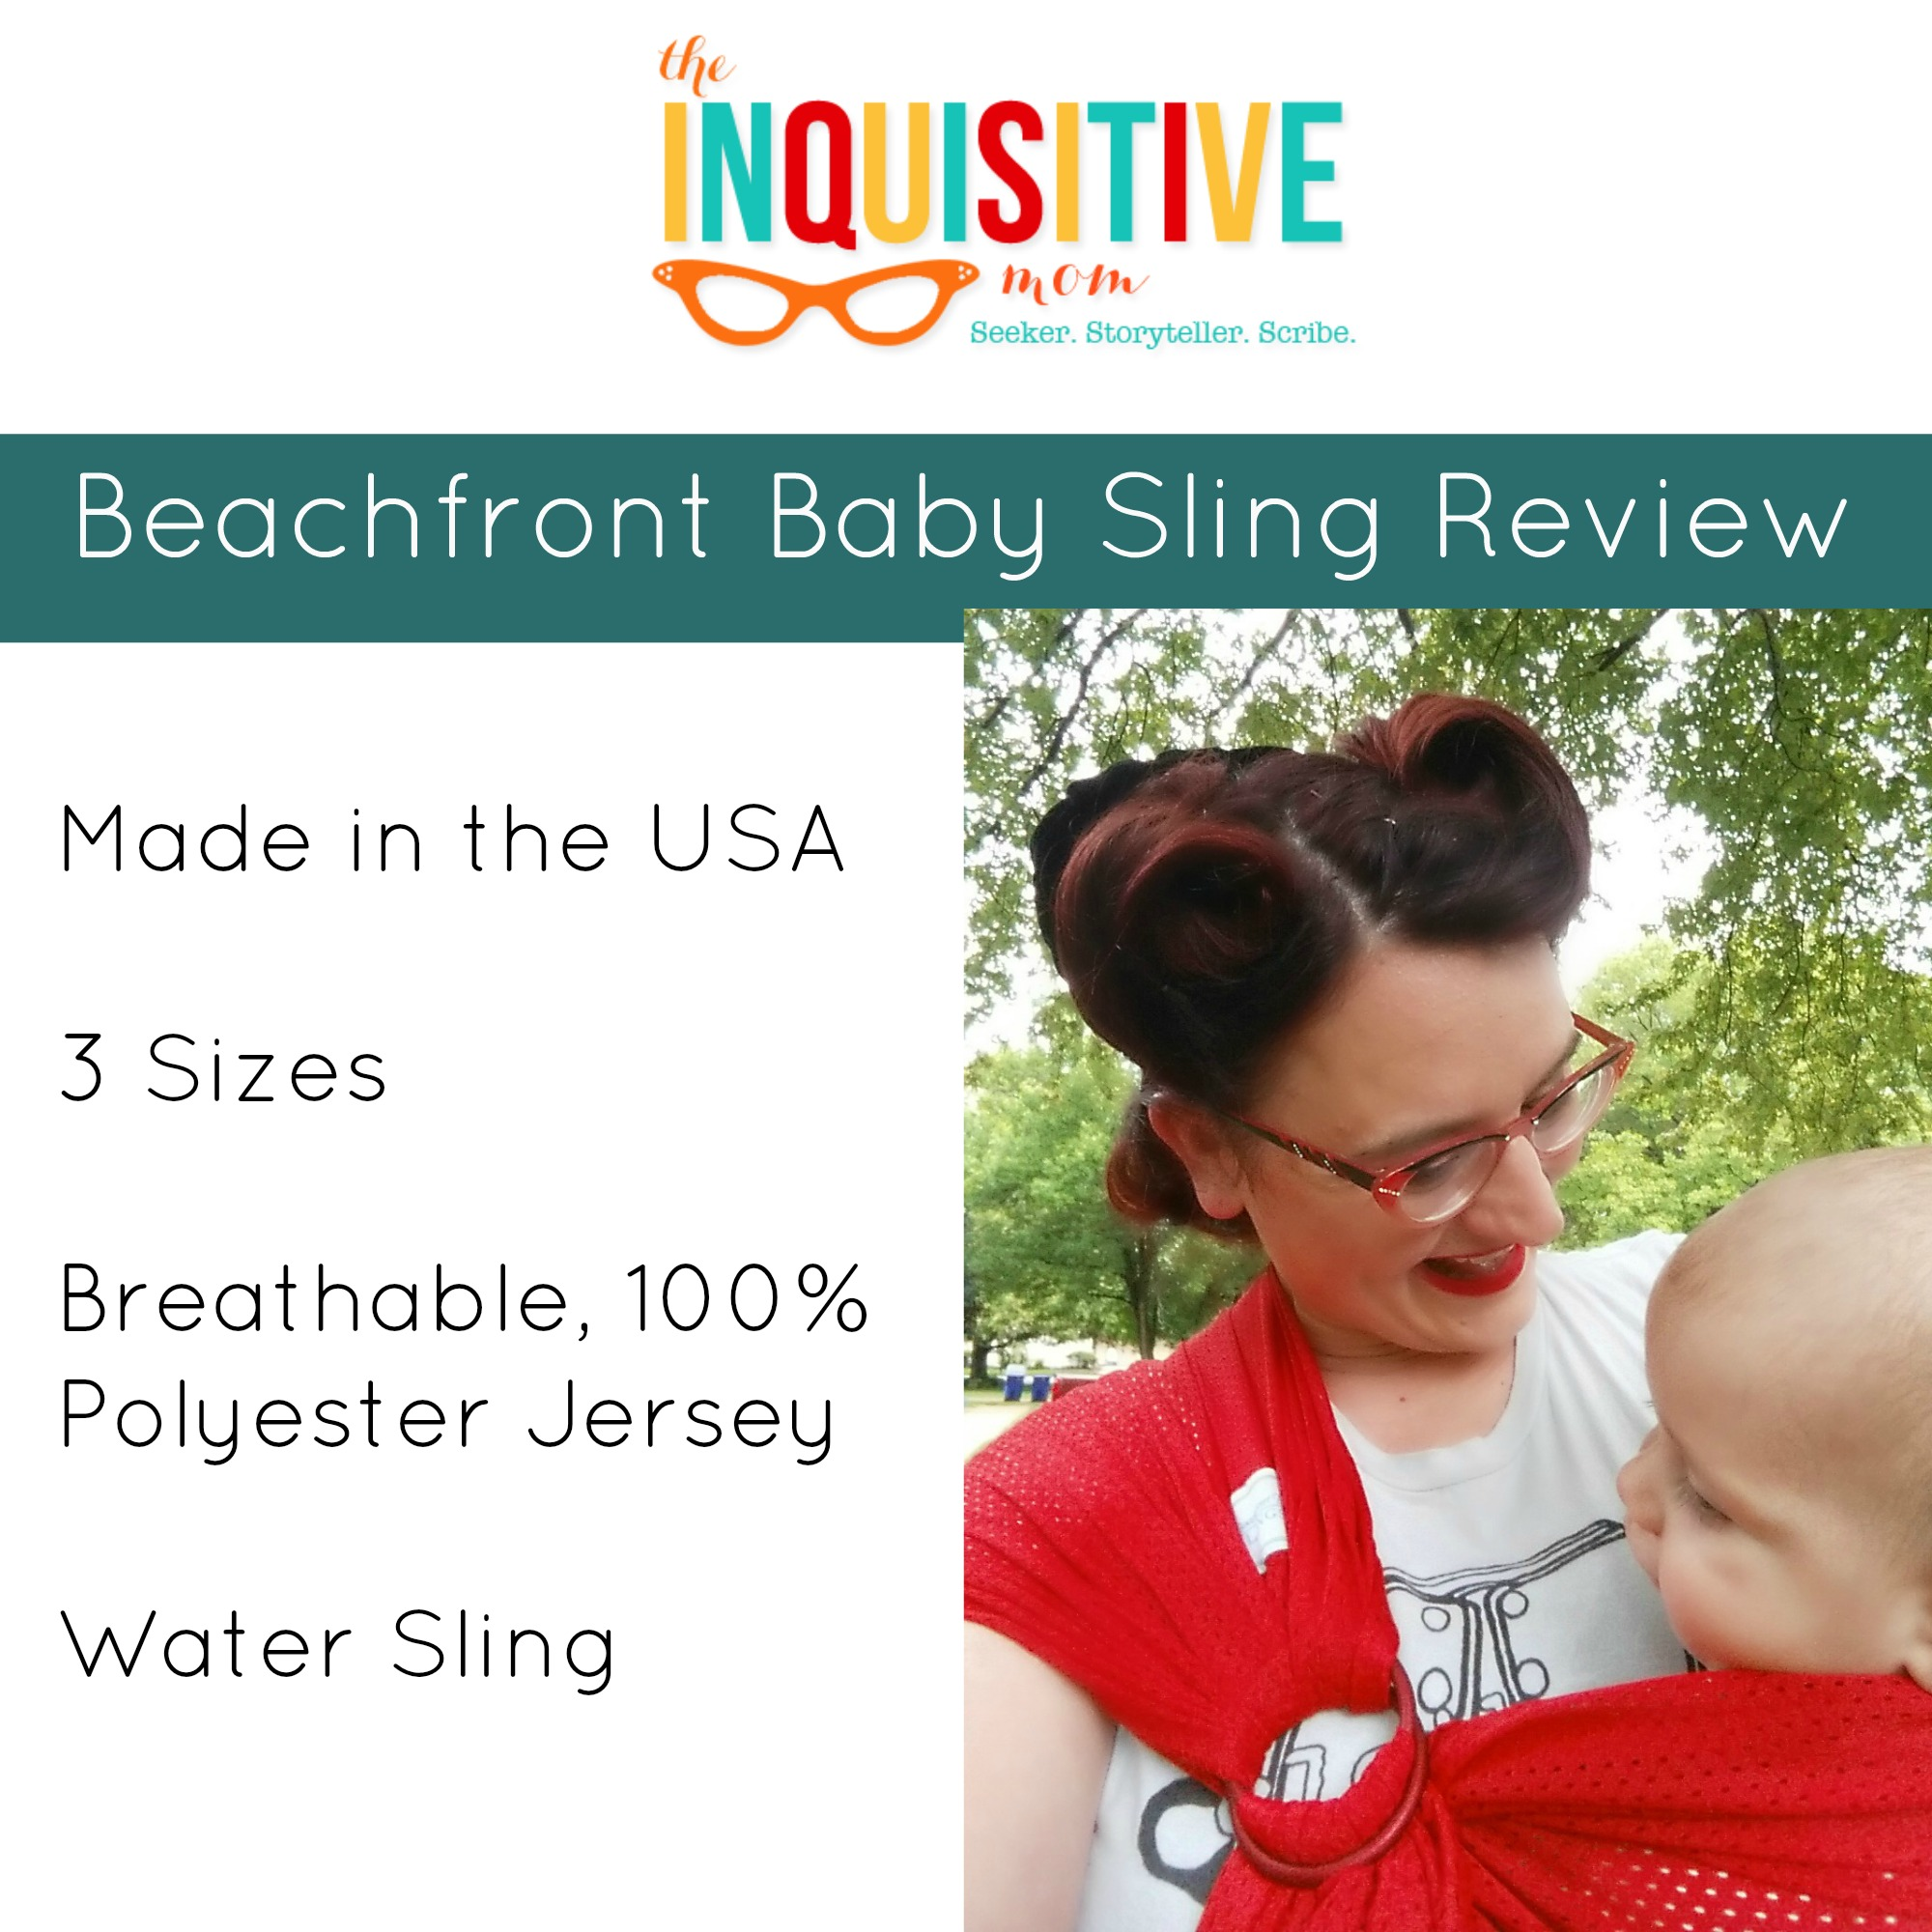 Beachfront Baby Sling Review The Inquisitive Mom Blog